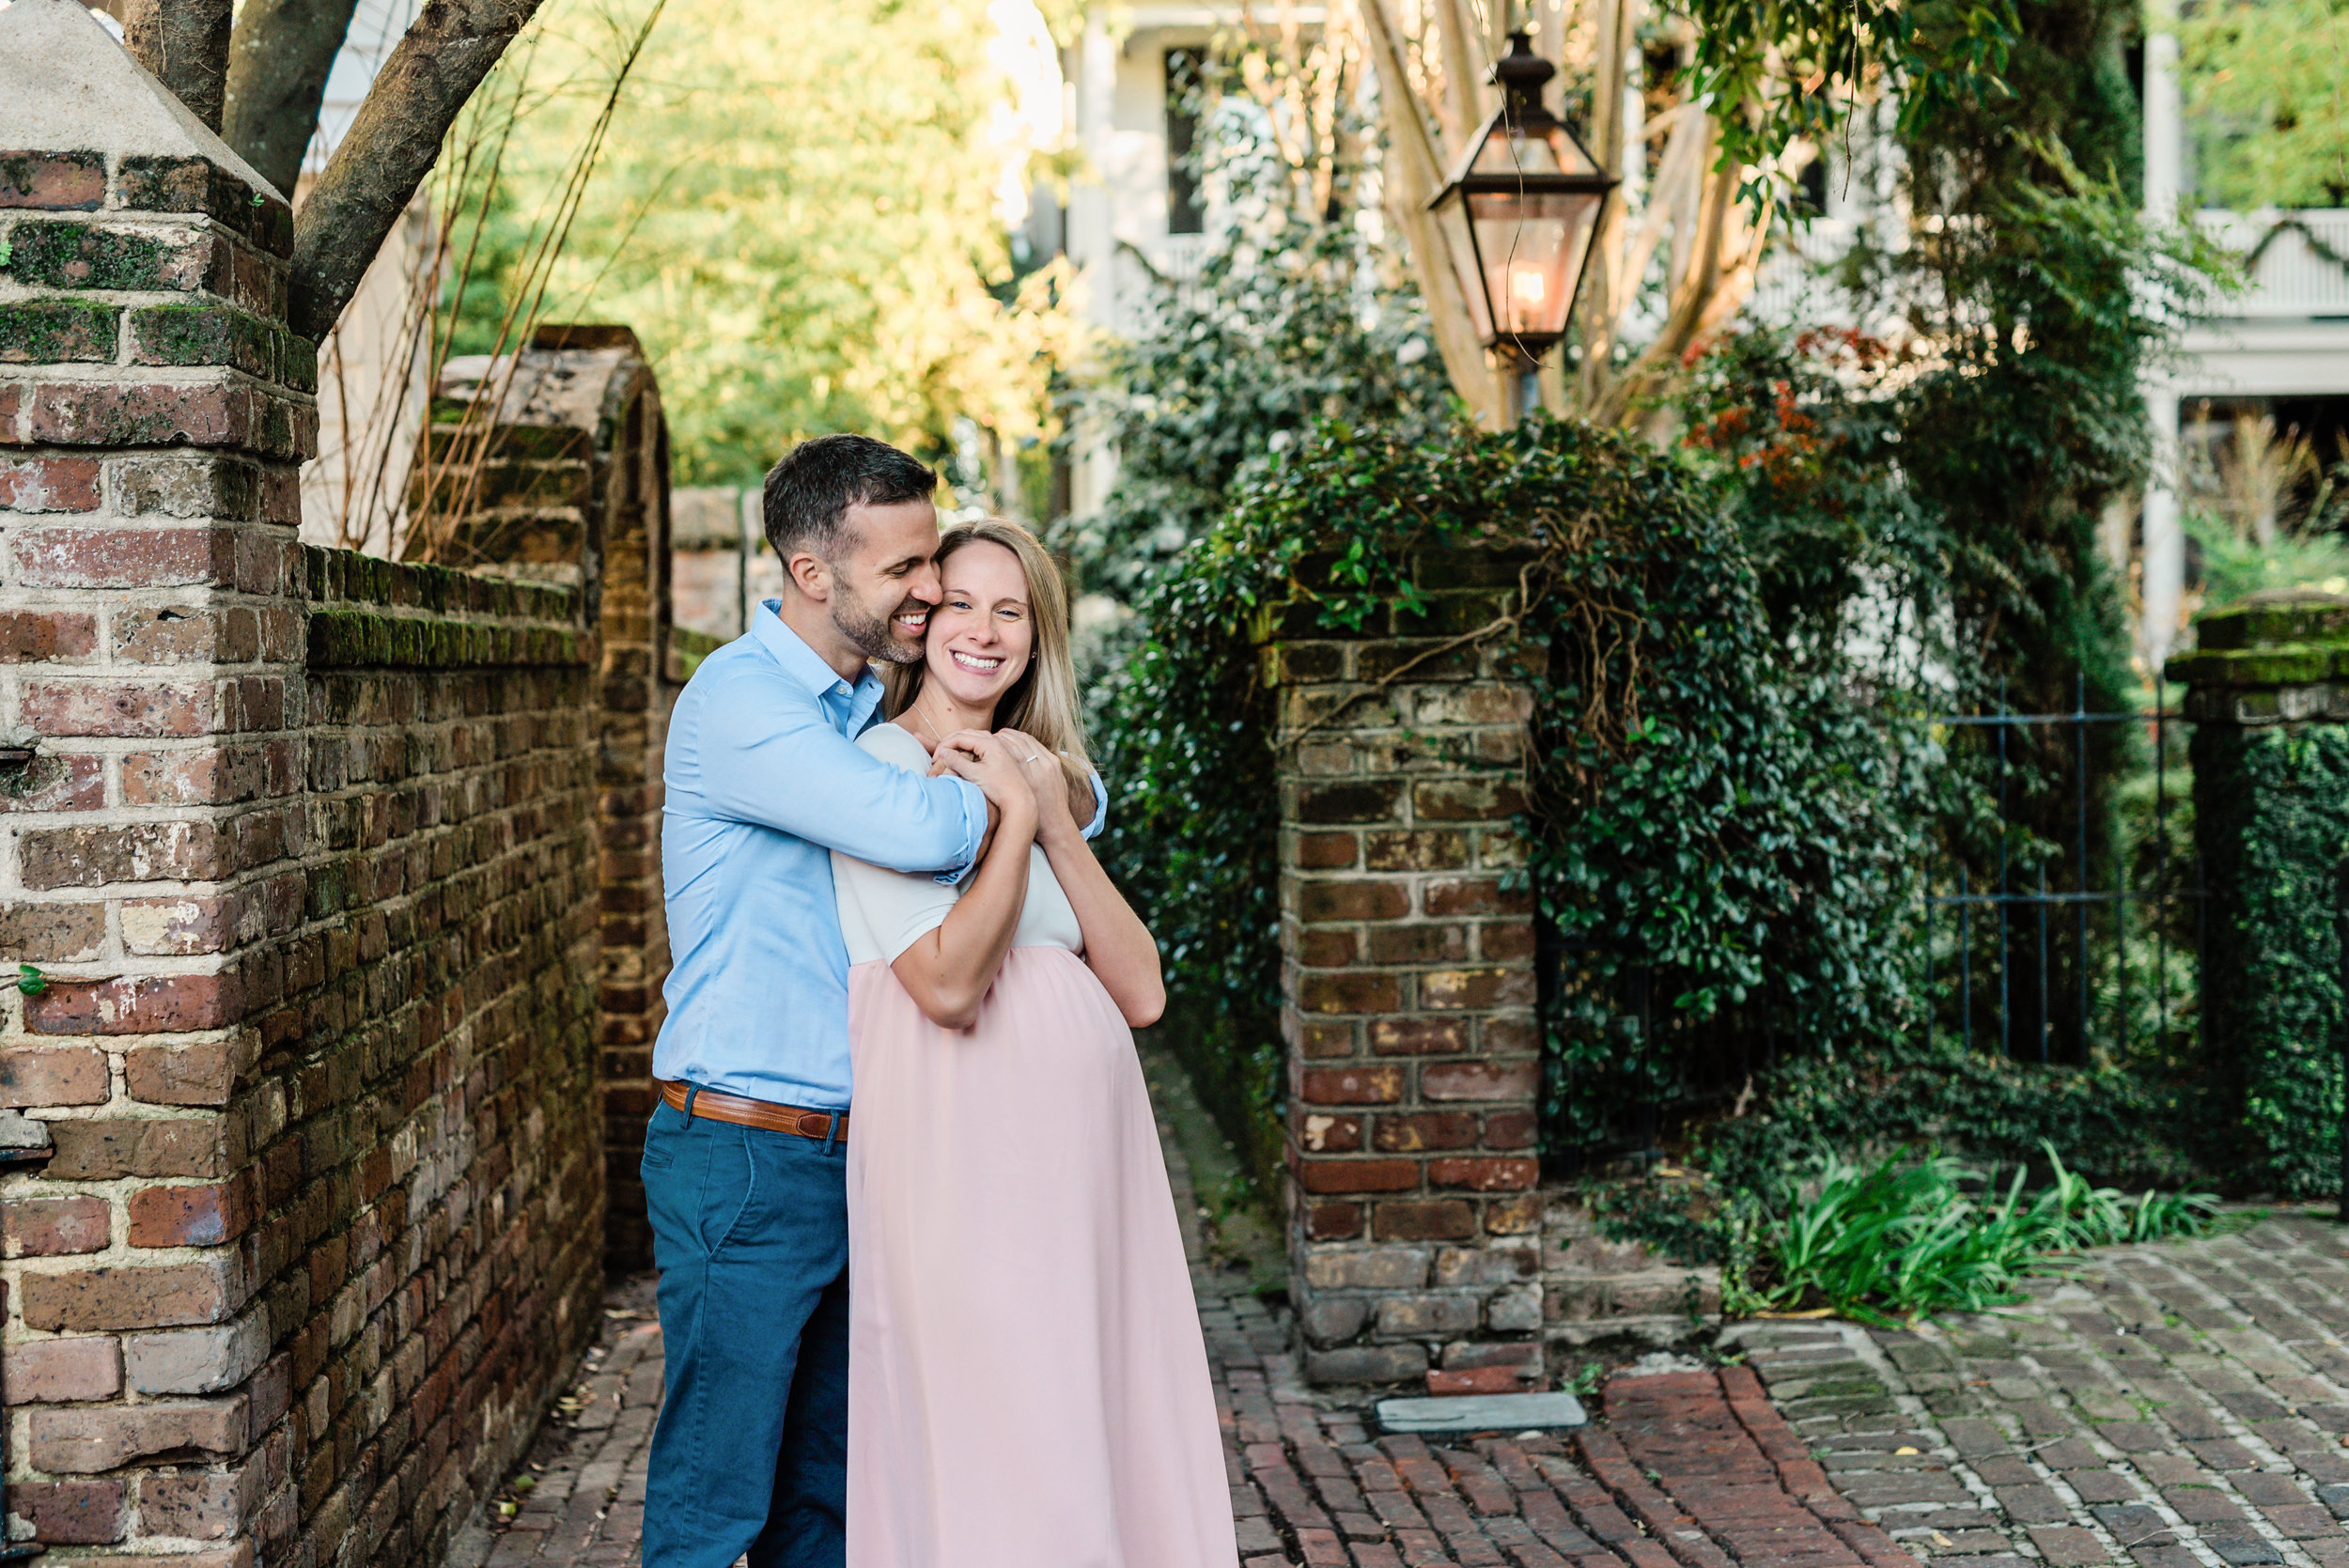 Charleston-Maternity-Photographer-FSP_8242 copy.jpg